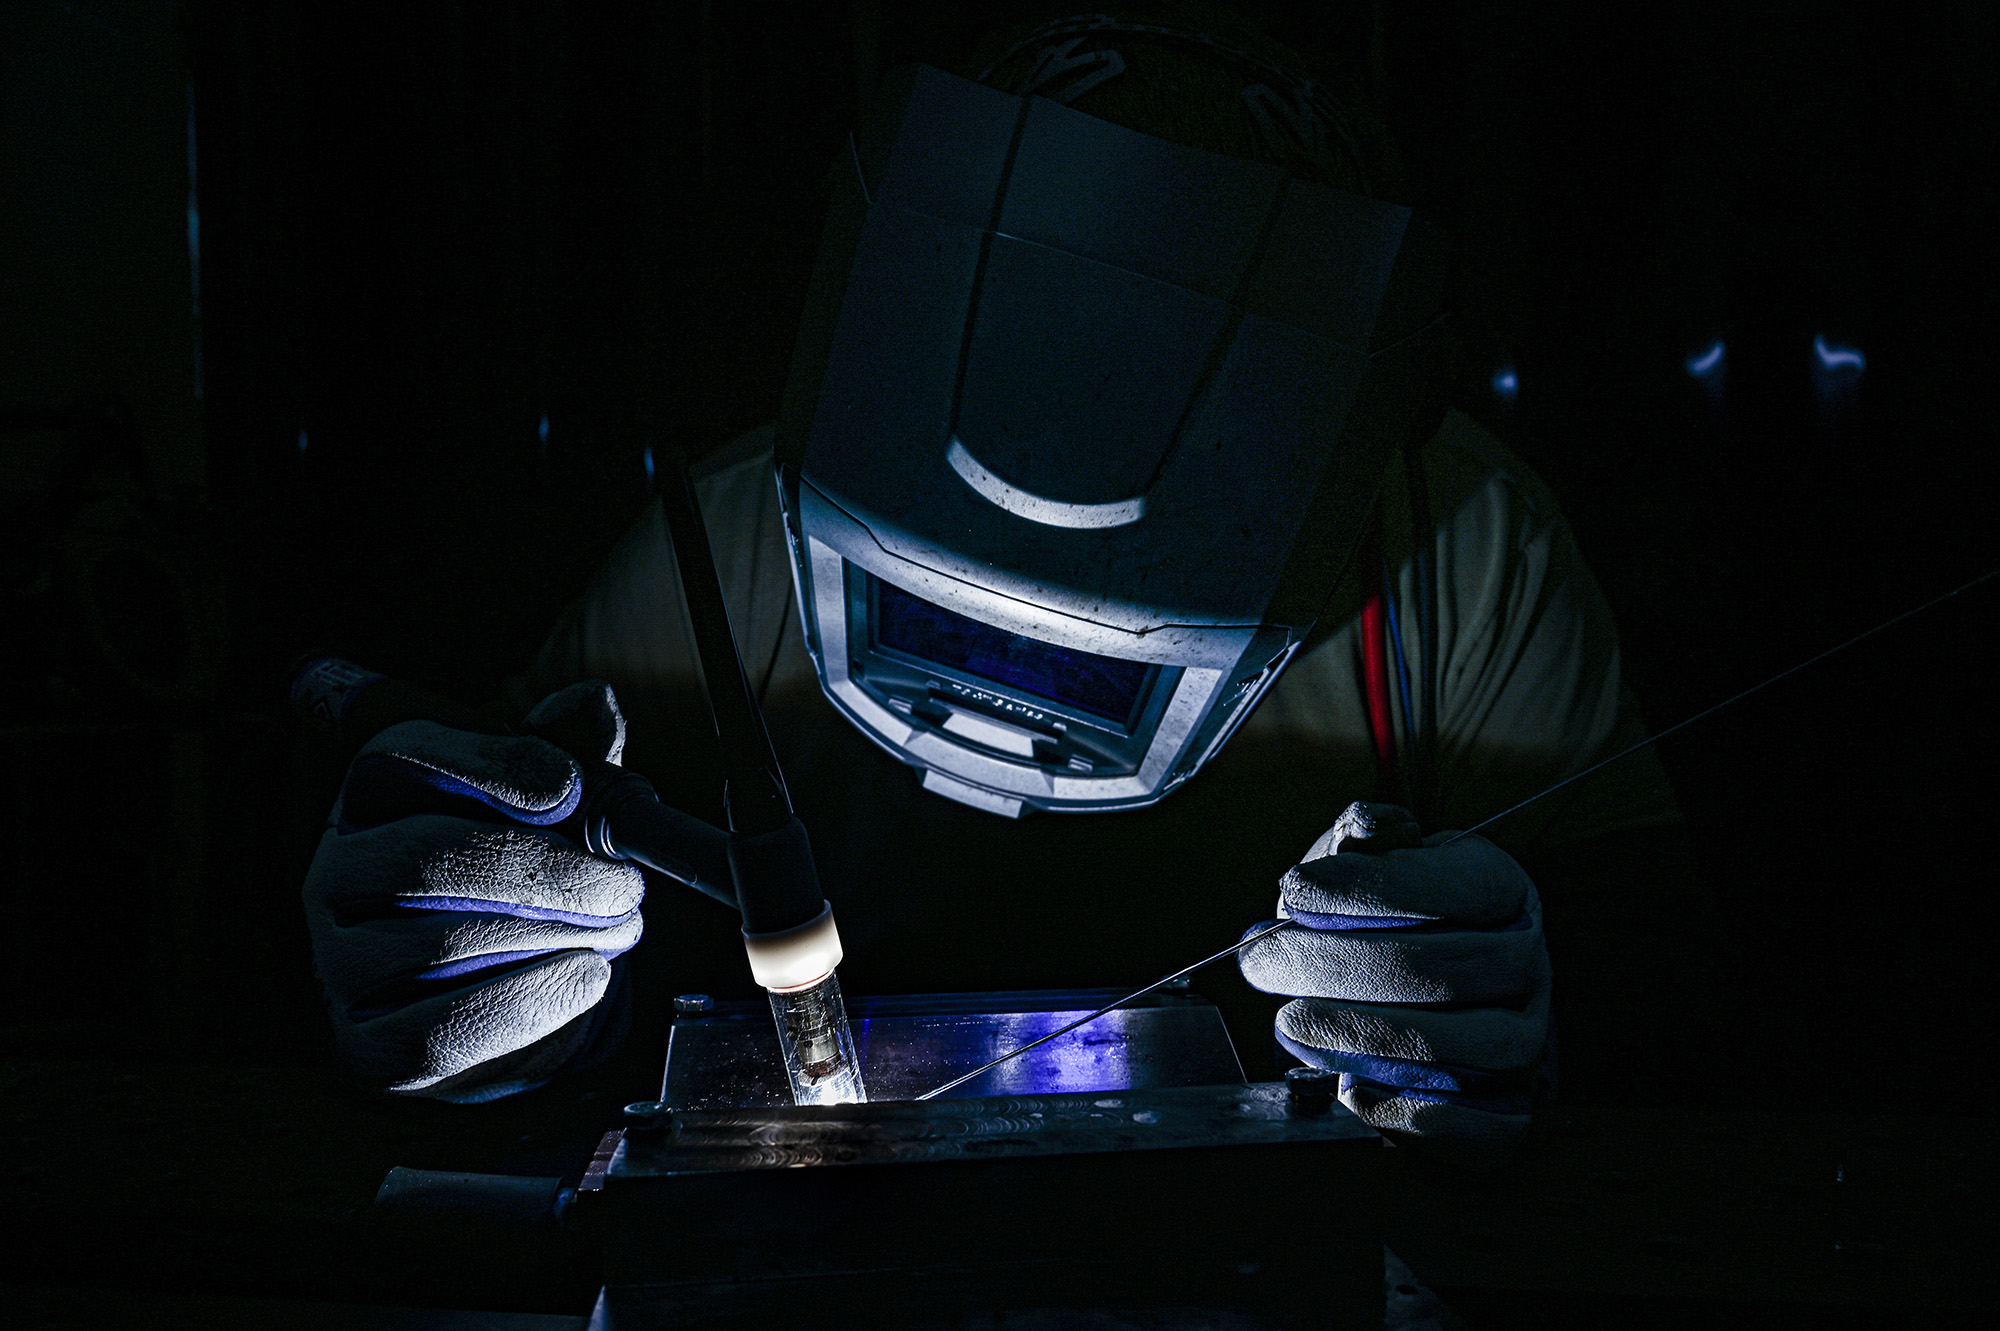 Staff Sgt. Adam Kitta welds metal recertification welding plates at the Pittsburgh International Airport Air Reserve Station, Pa., Oct. 29, 2020. (Joshua J. Seybert/Air Force)